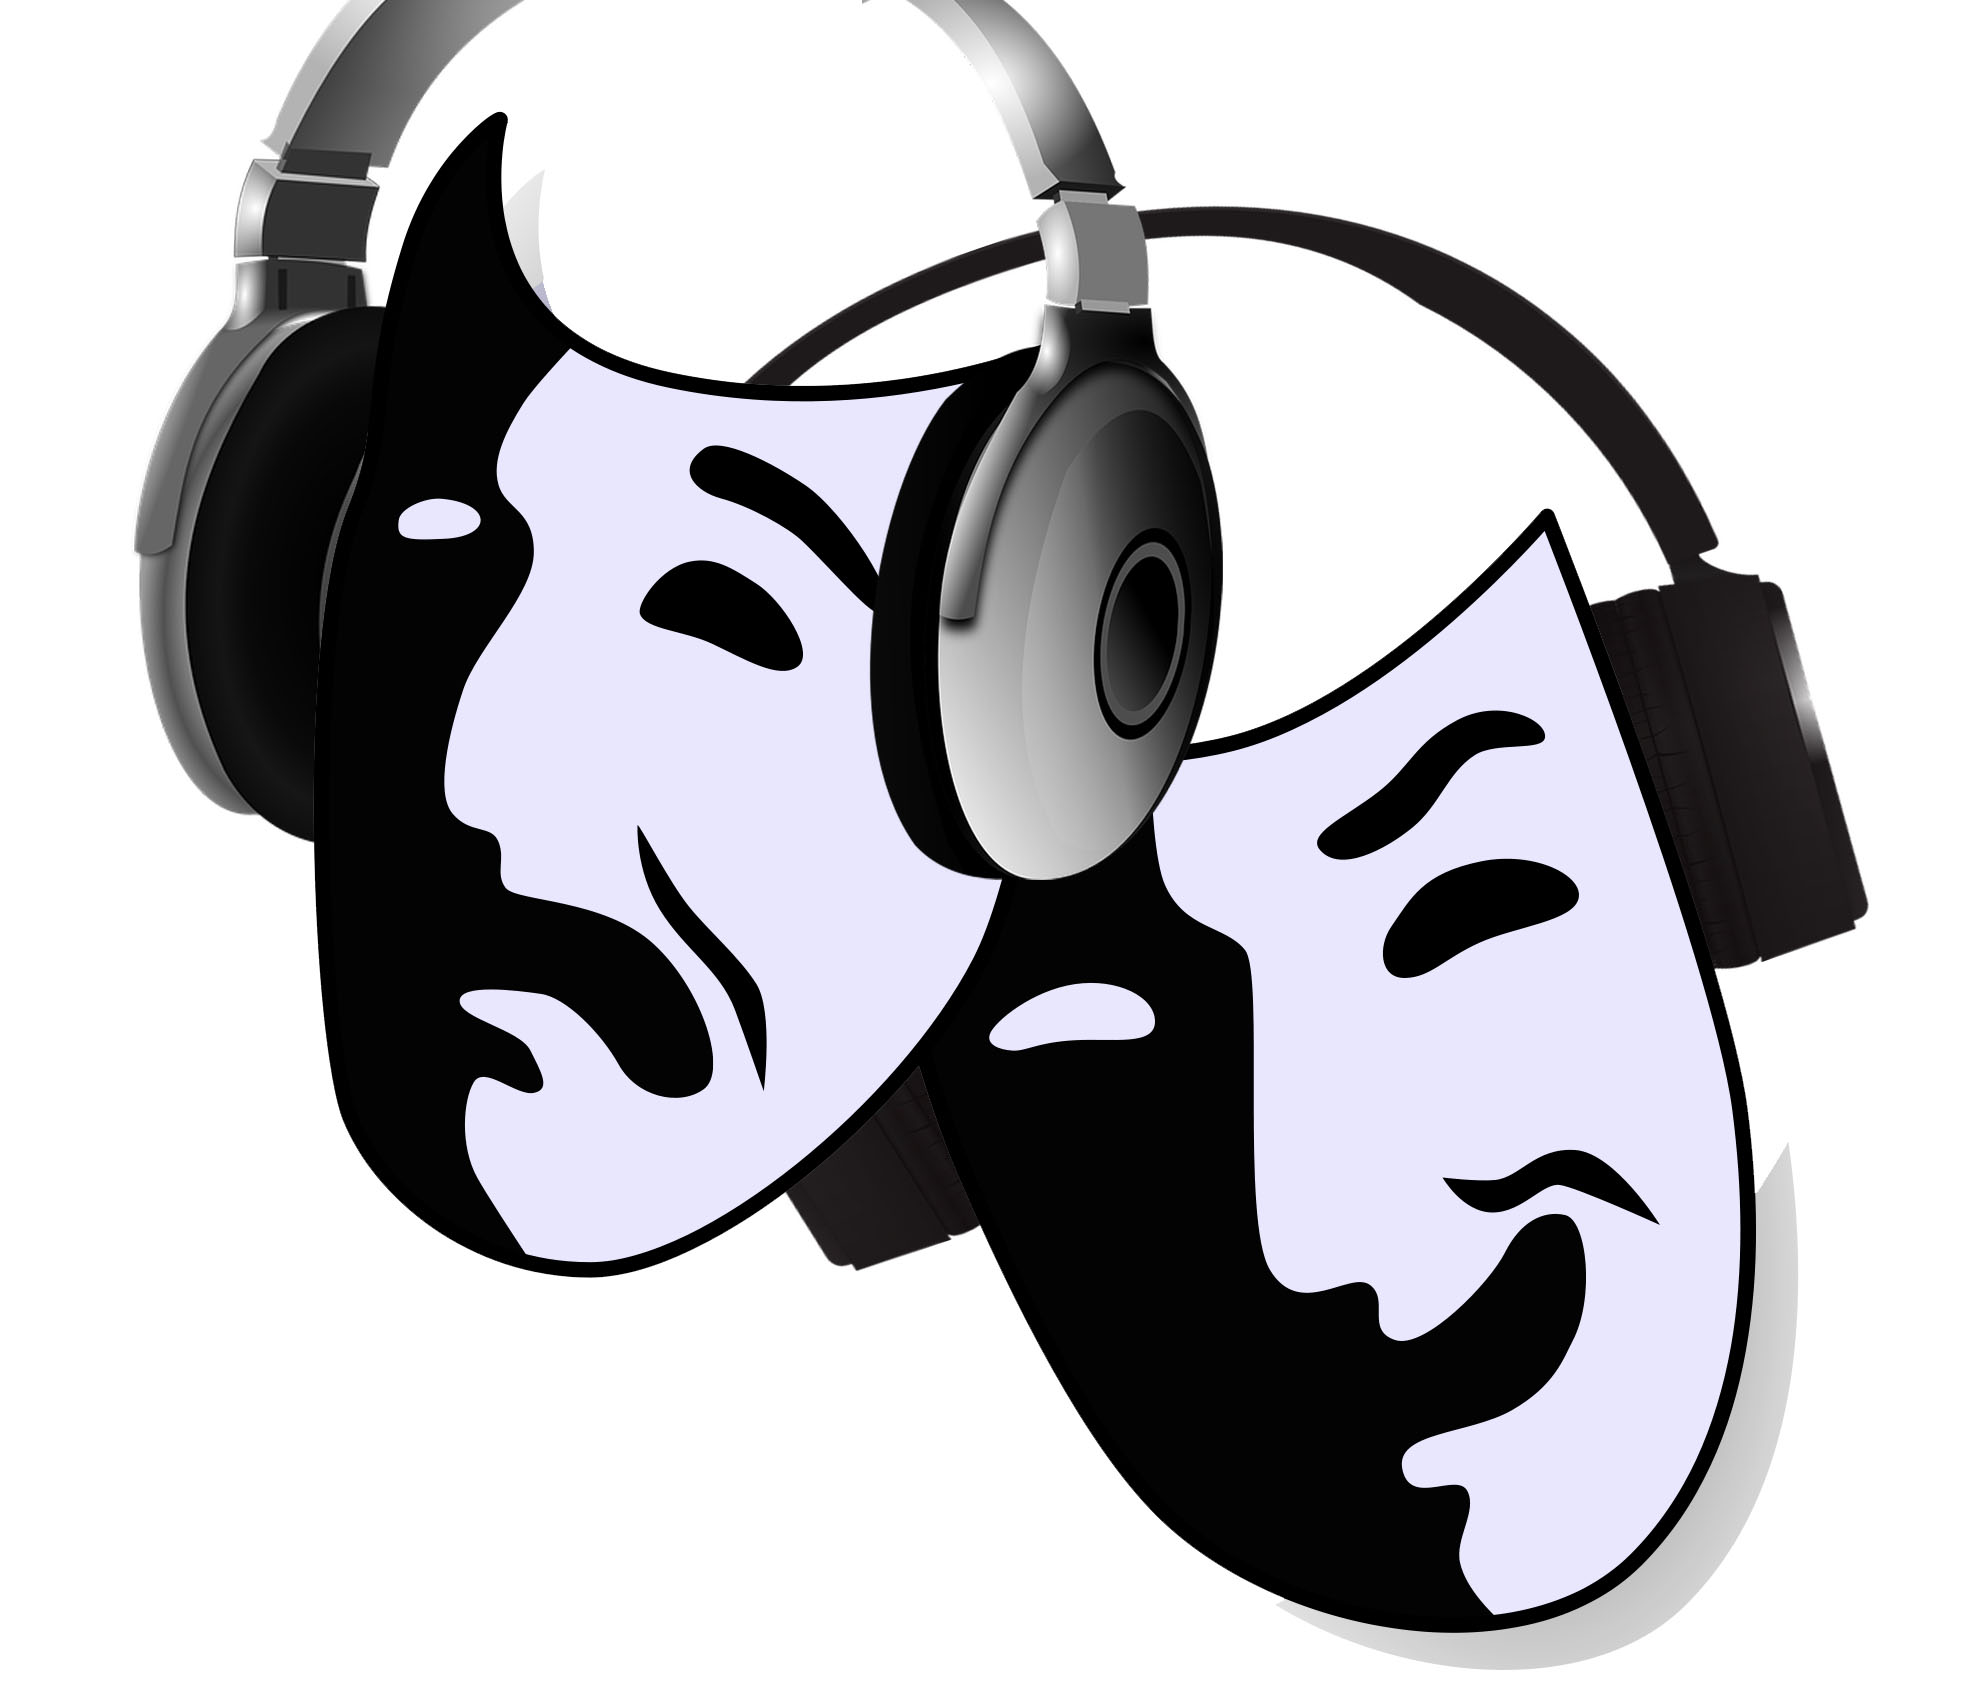 Drill clipart sounds. Sound design for theater